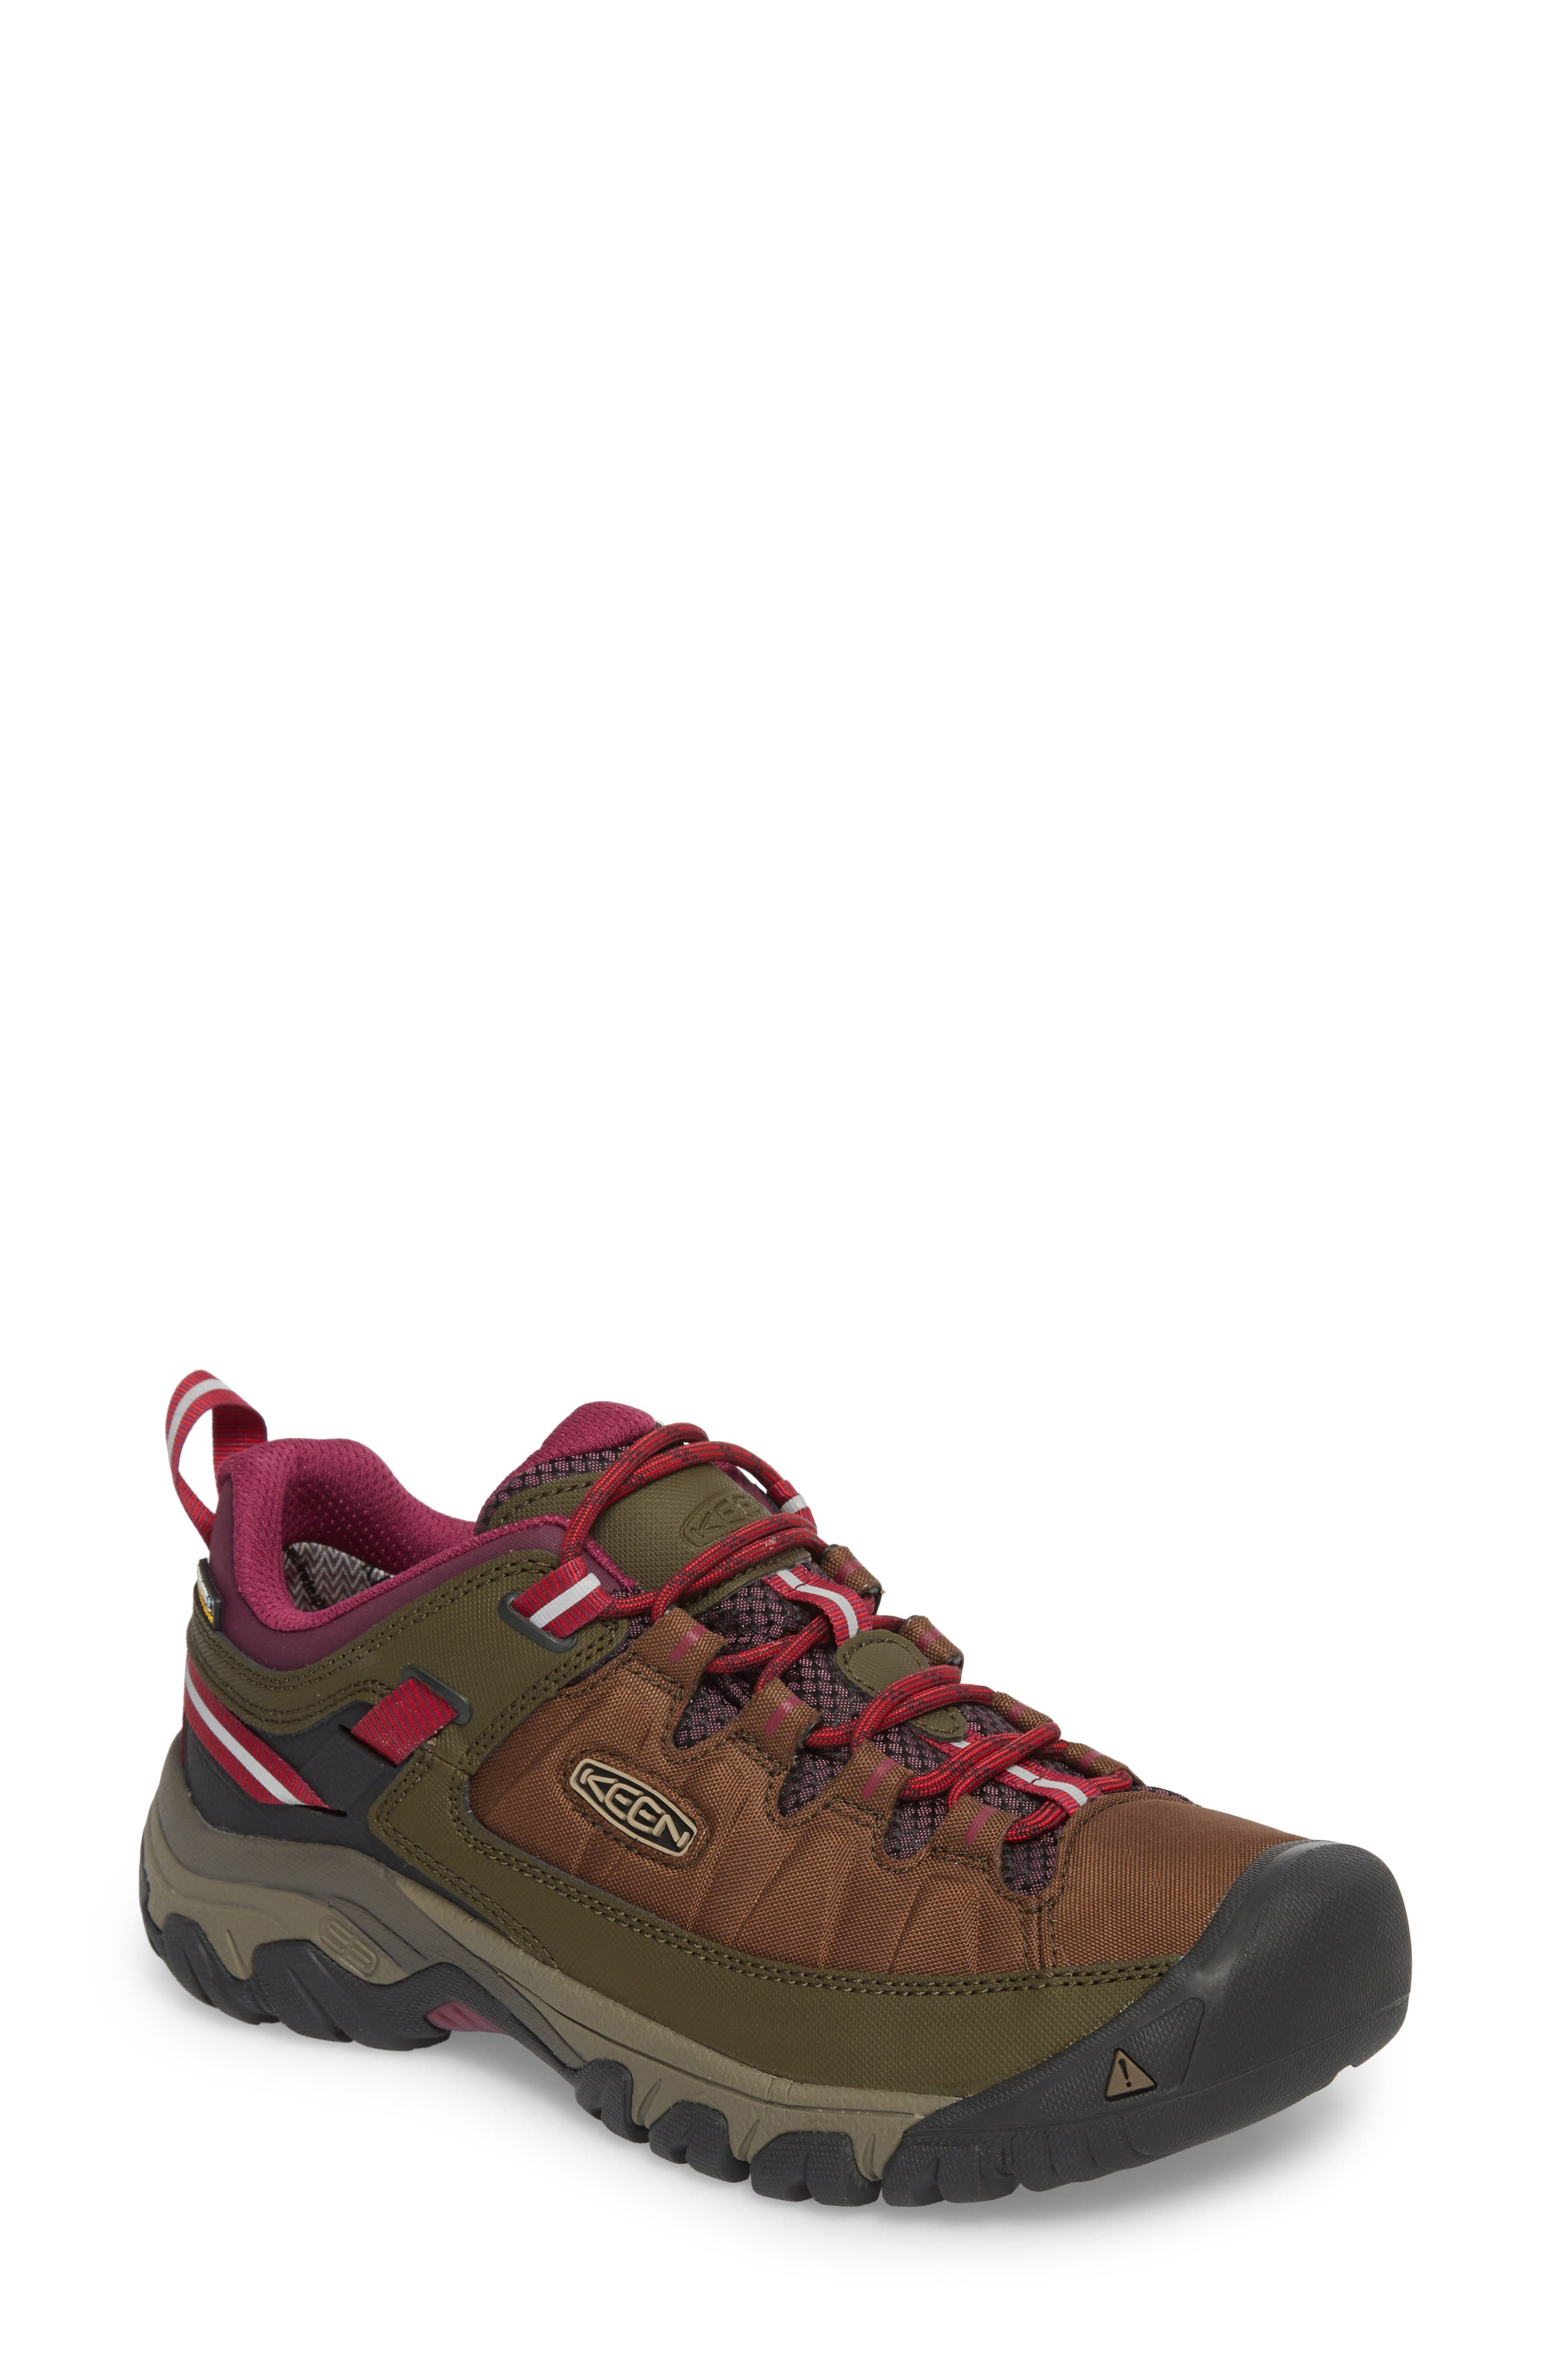 Alternate Image 1 Selected - Keen Targhee EXP Waterproof Hiking Shoe (Women)